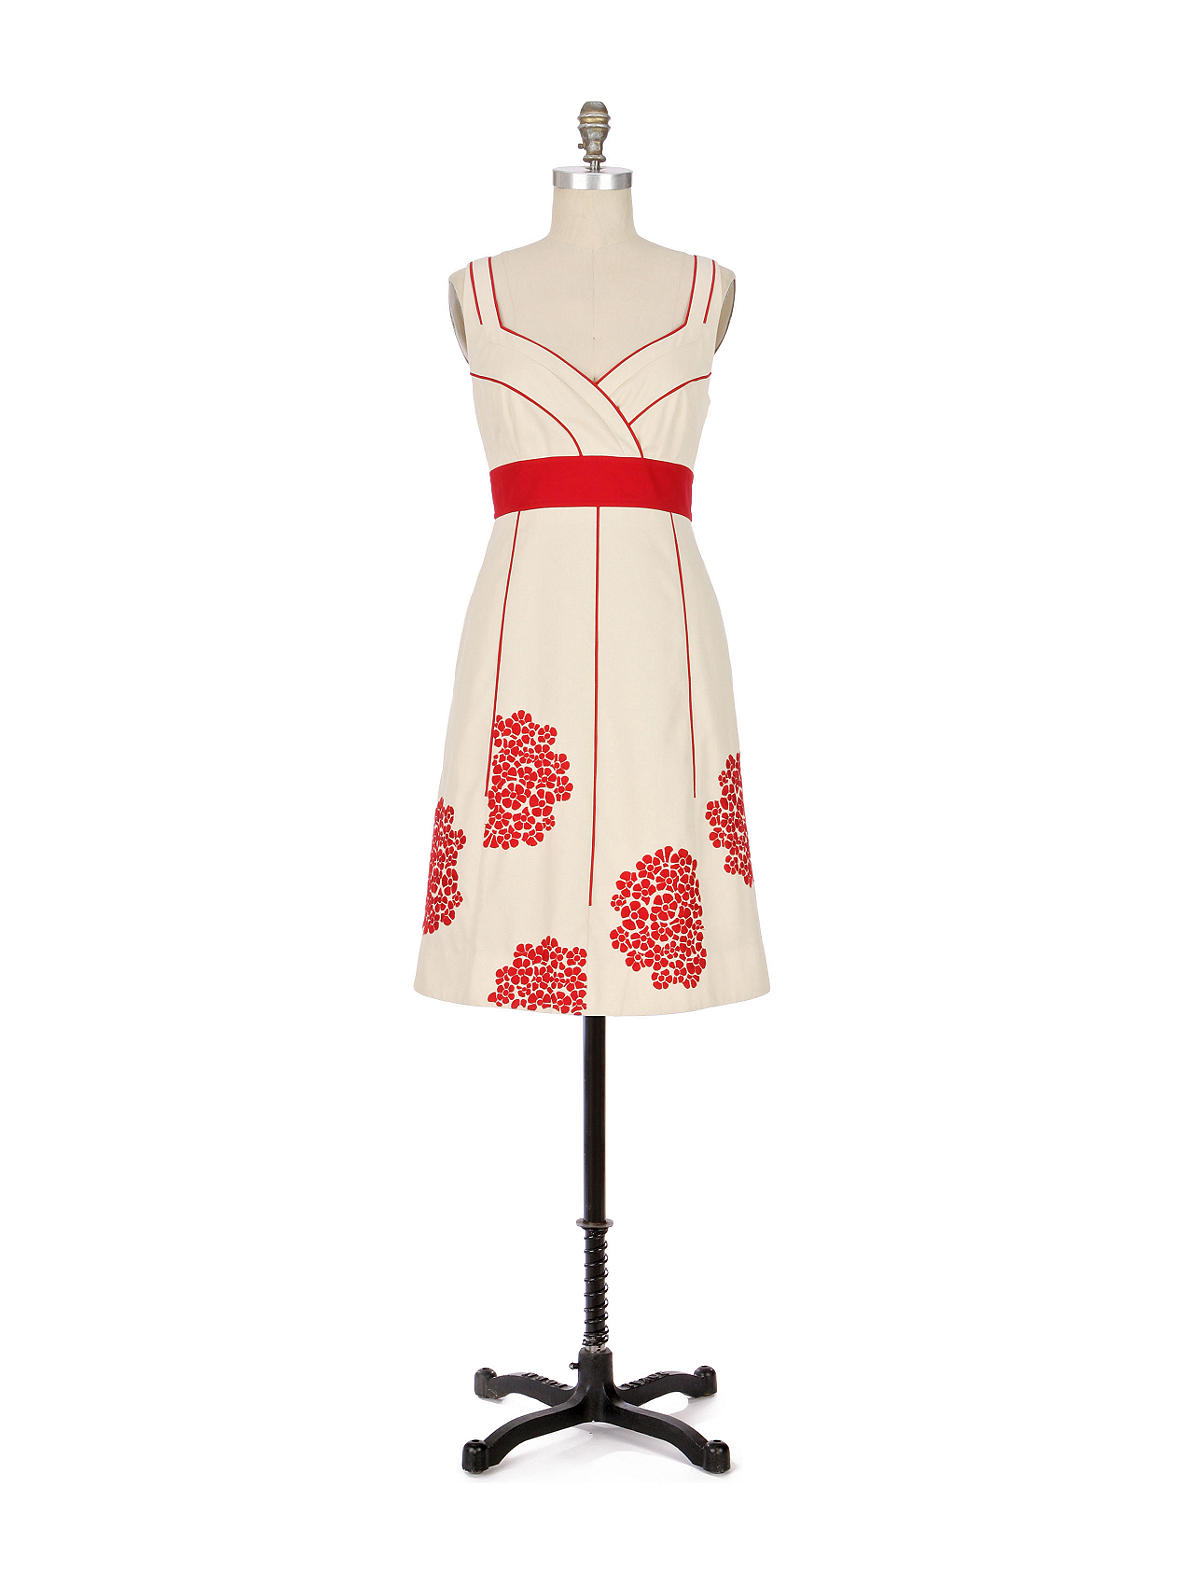 Coral Way Dress - Anthropologie.com from anthropologie.com